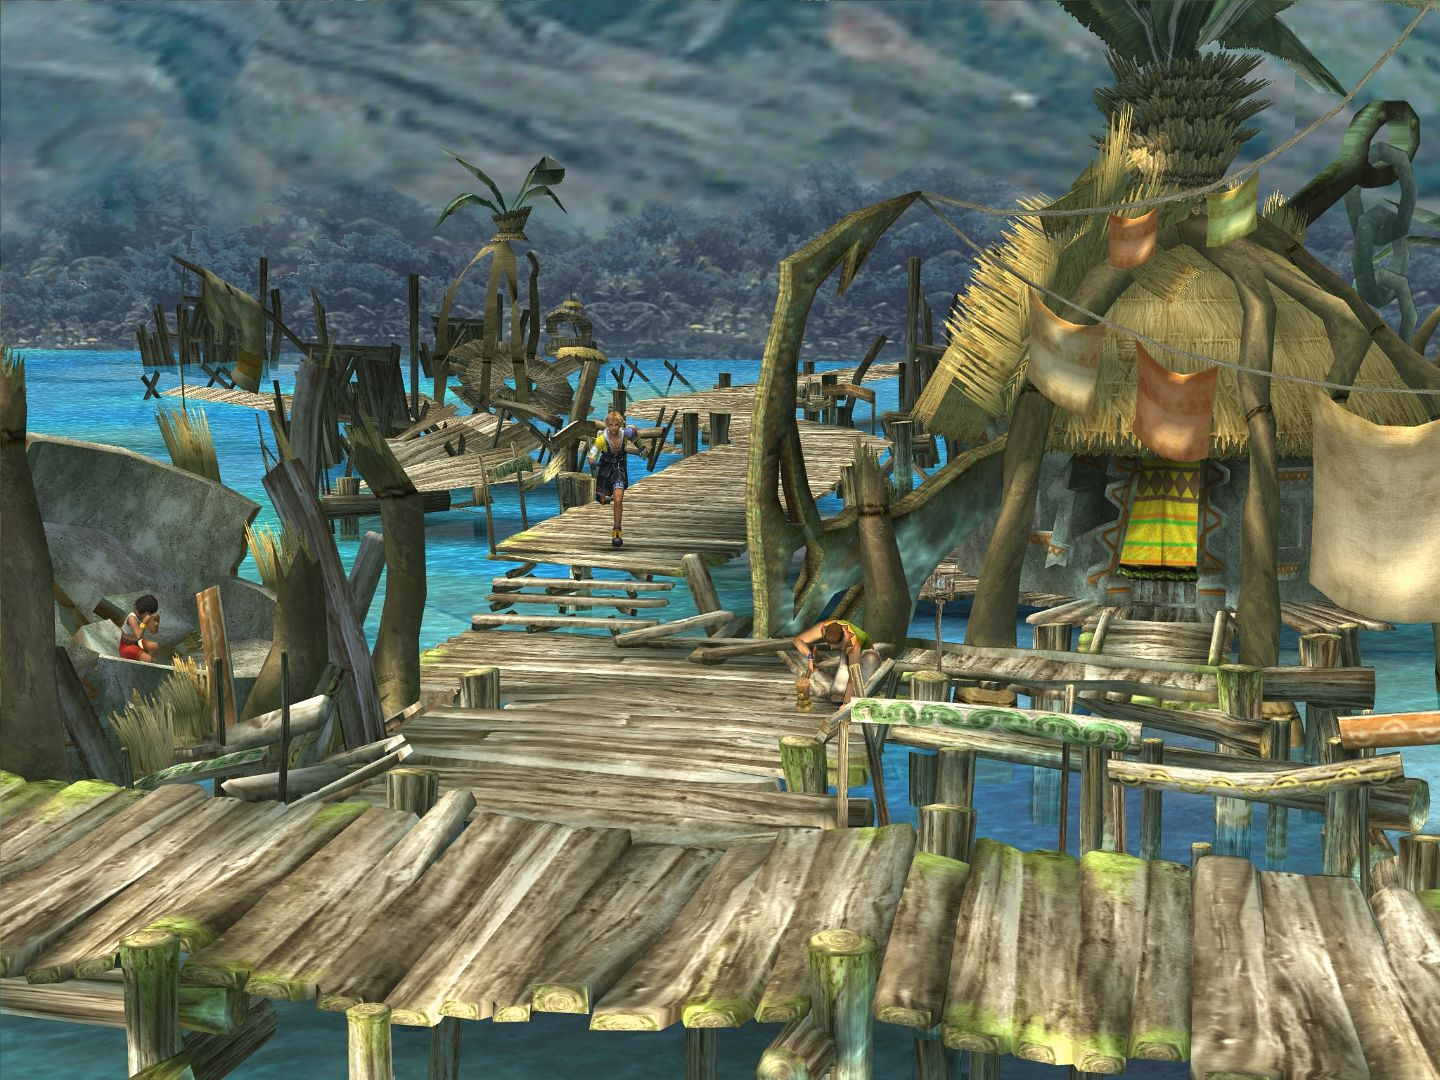 Final Fantasy X 10 Wallpaper Set3 05 KILIKA